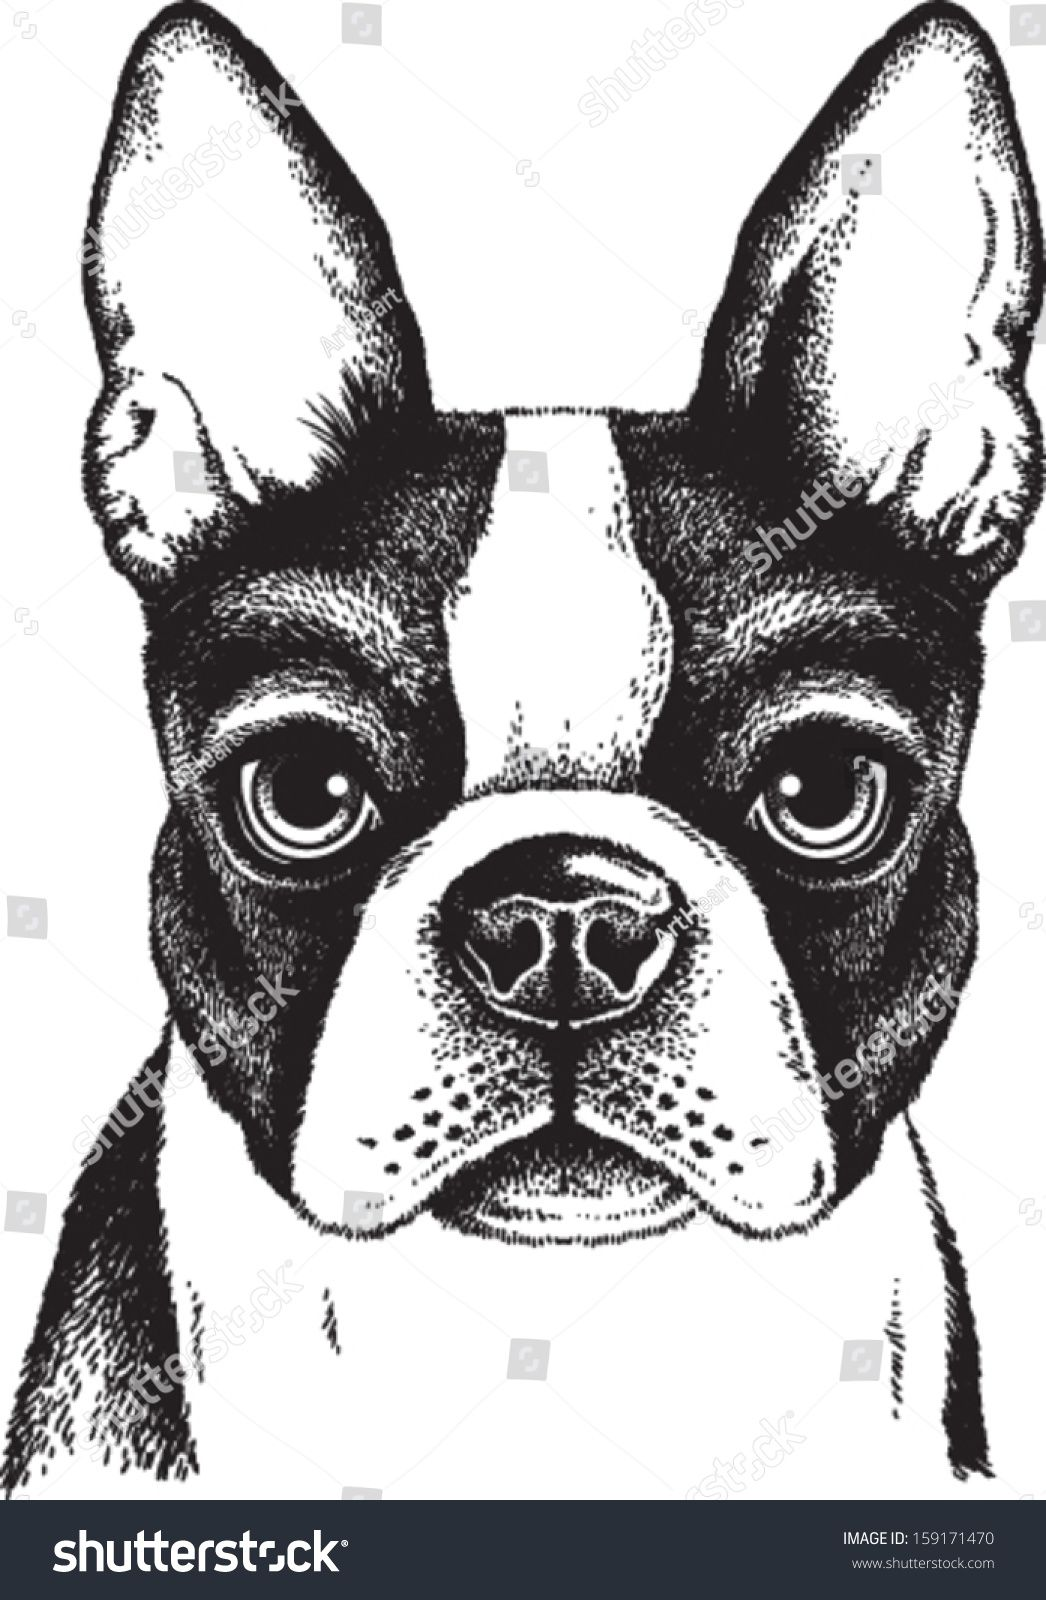 Black And White Vector Sketch Of A Fawn Boston Terrier S Face Boston Terrier Art Boston Terrier Illustration Dog Drawing